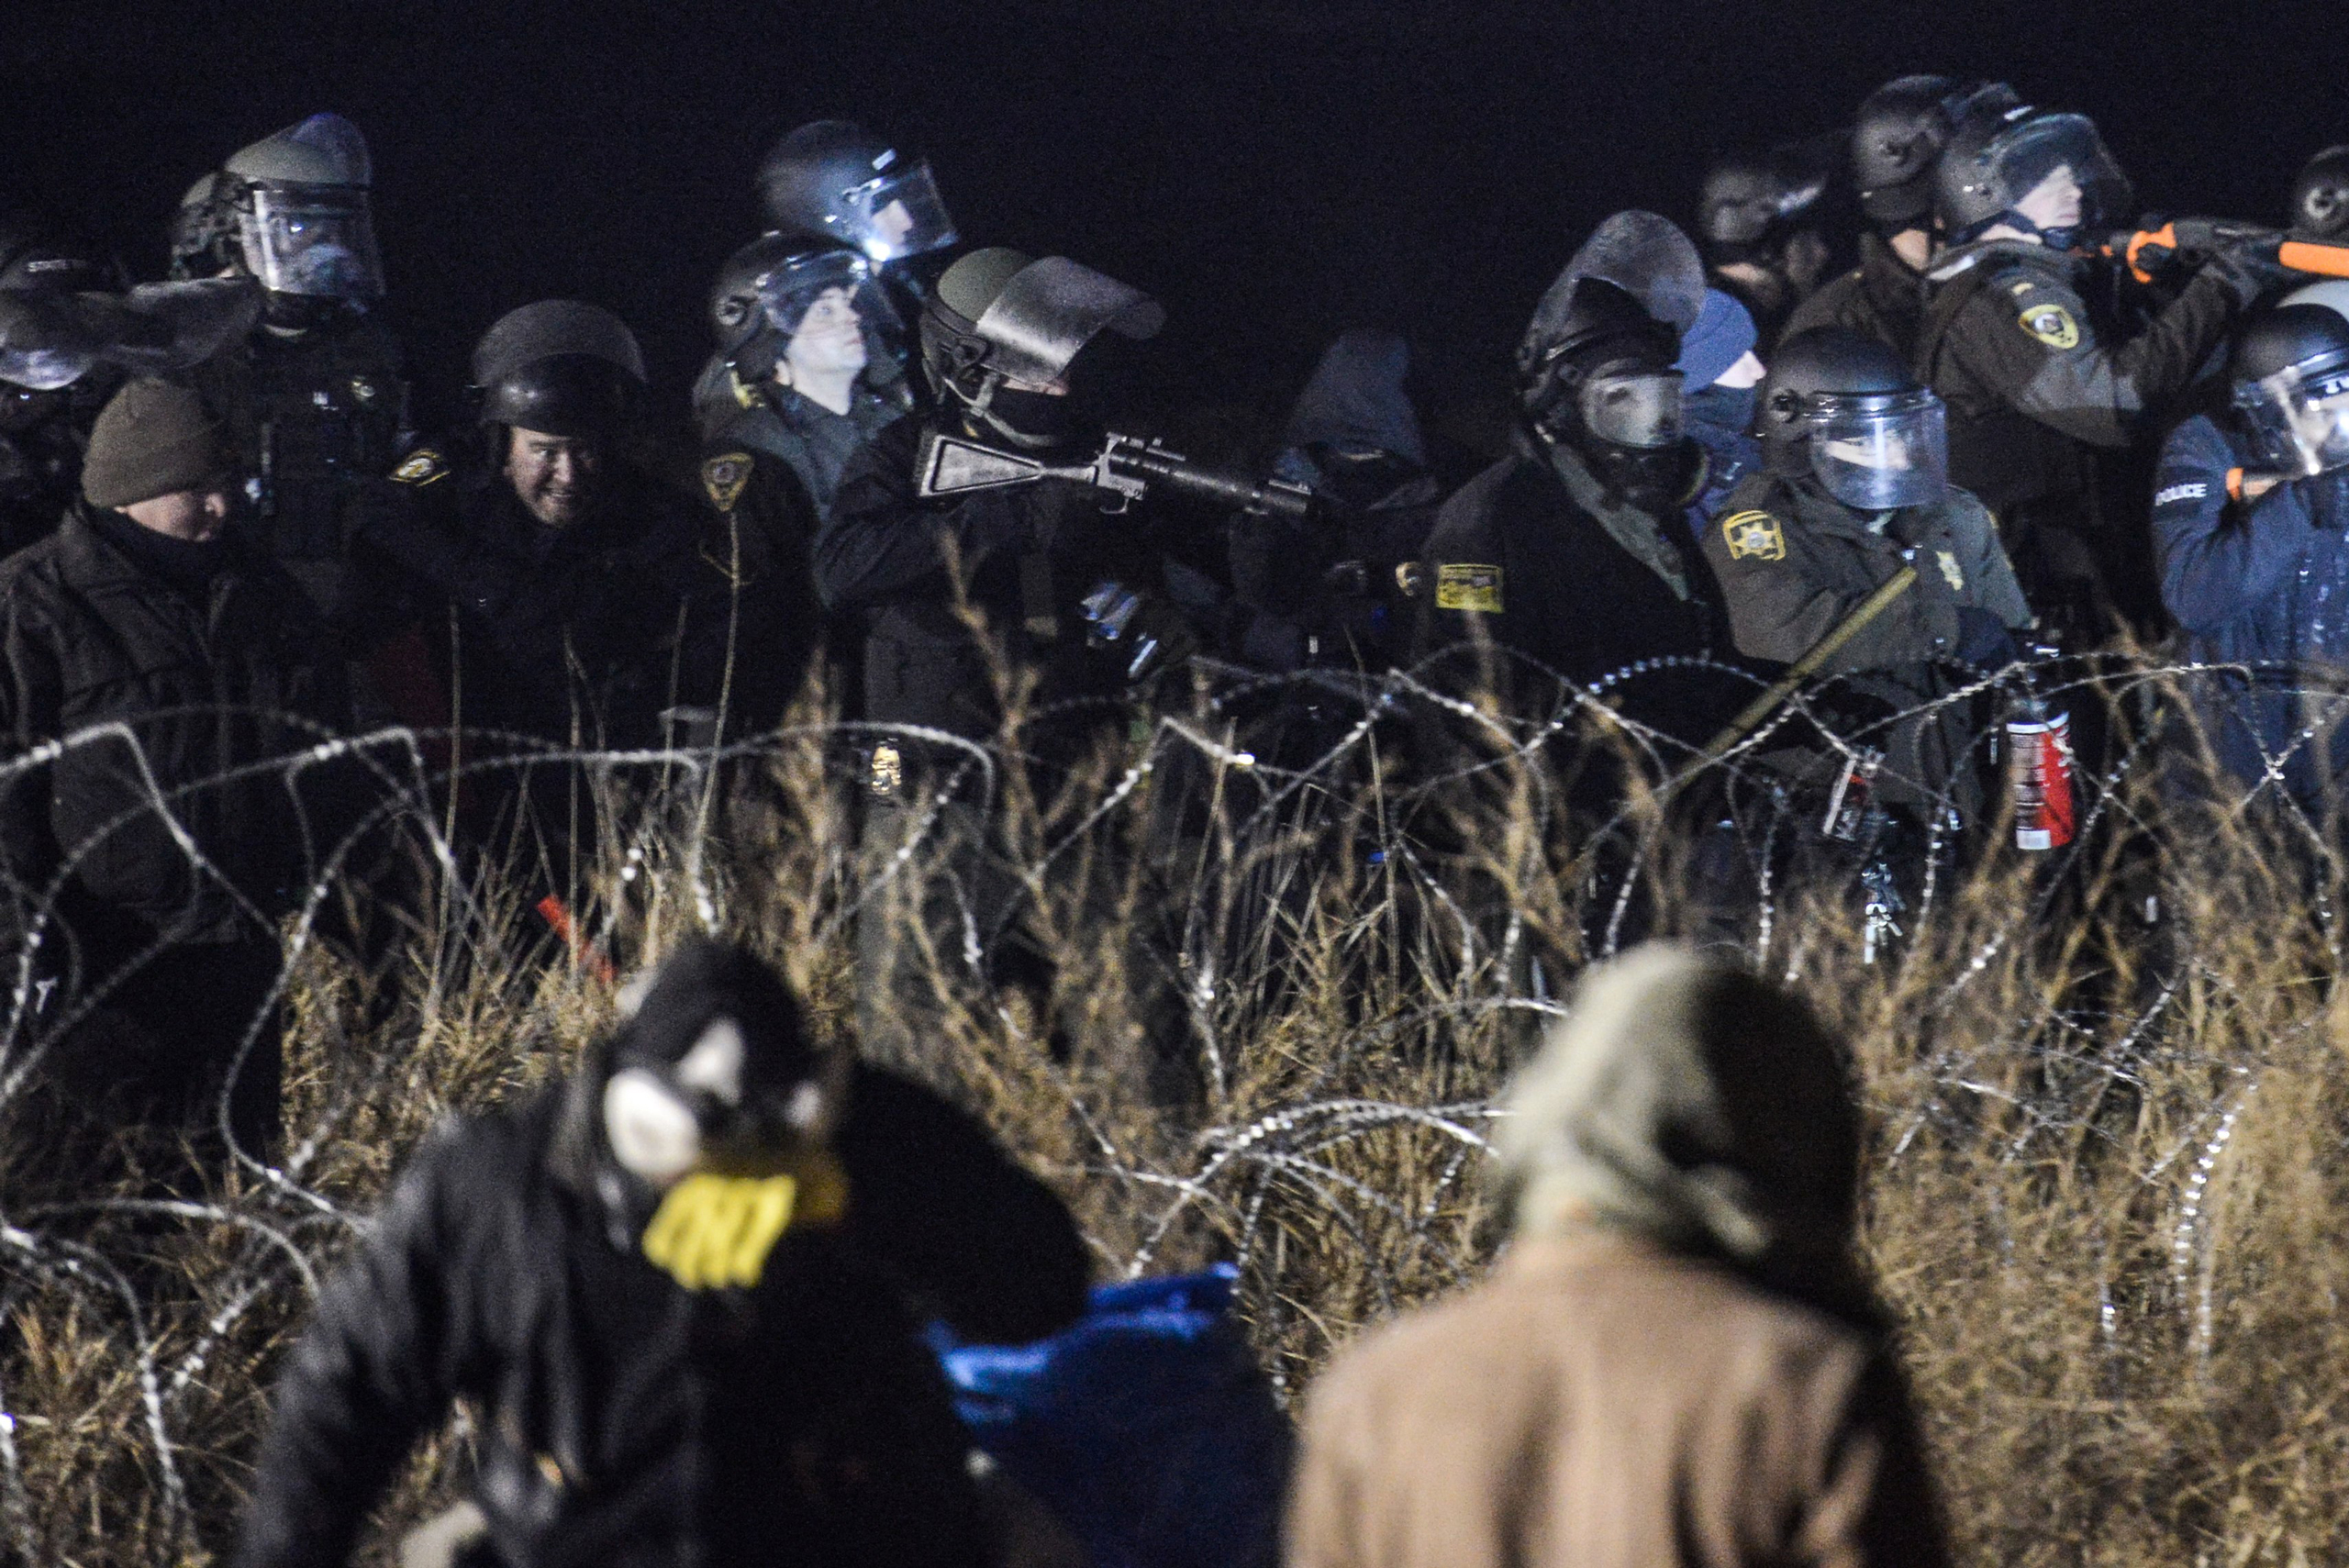 Police confront protesters with a rubber bullet gun during a protest against plans to pass the Dakota Access pipeline near the Standing Rock Indian Reservation, near Cannon Ball, N.D., on Nov. 20, 2016.